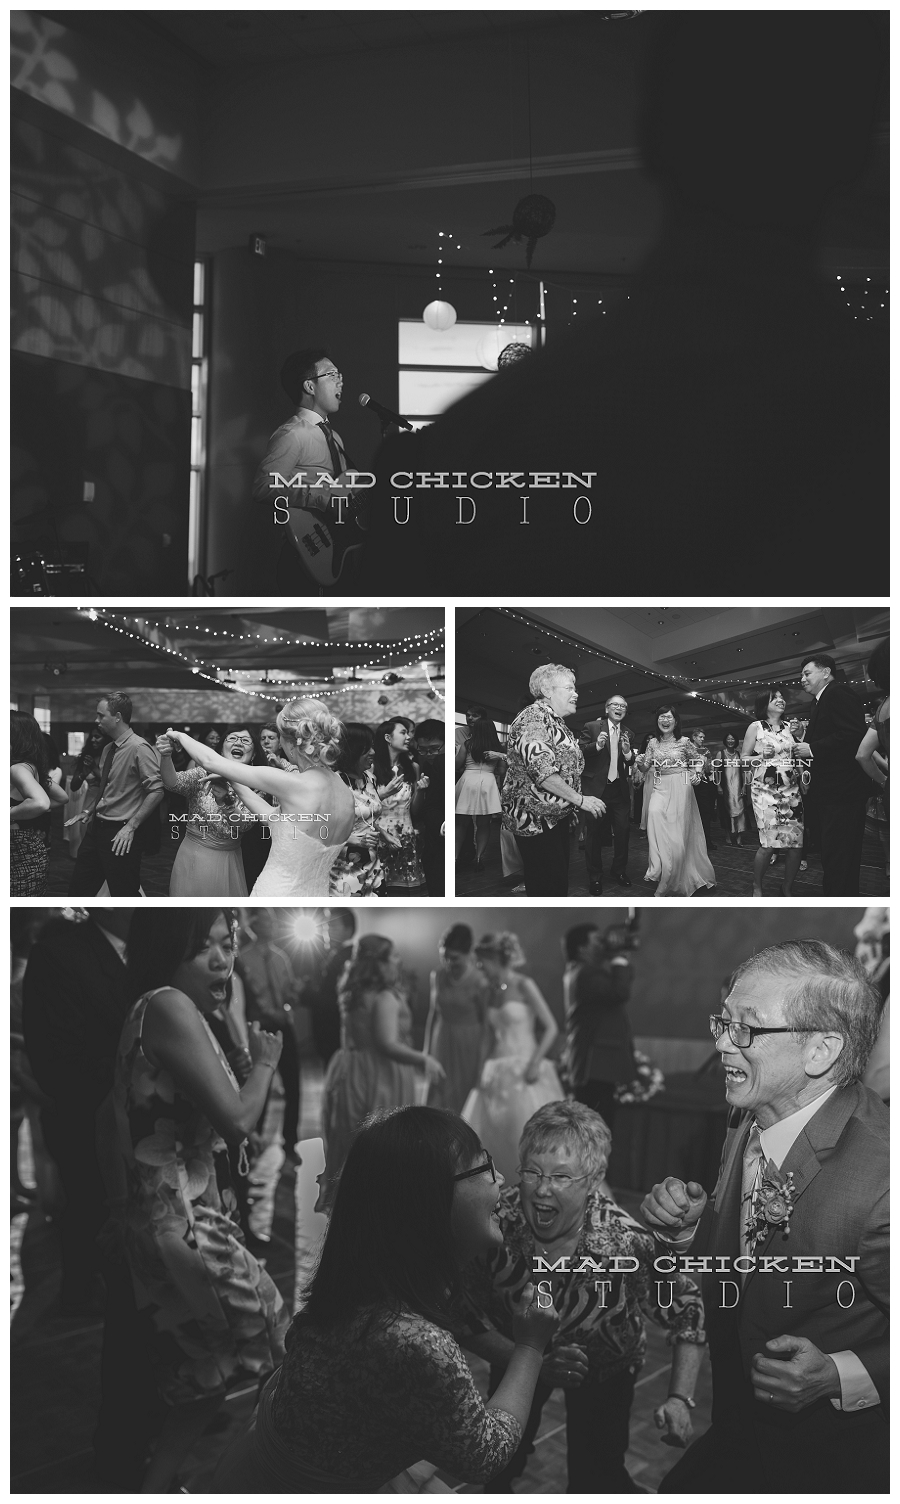 duluth wedding photographer | mad chicken studio | Darrick wedding reception at the Harborside Ballroom DECC | Bella Flora | Northland Special Events